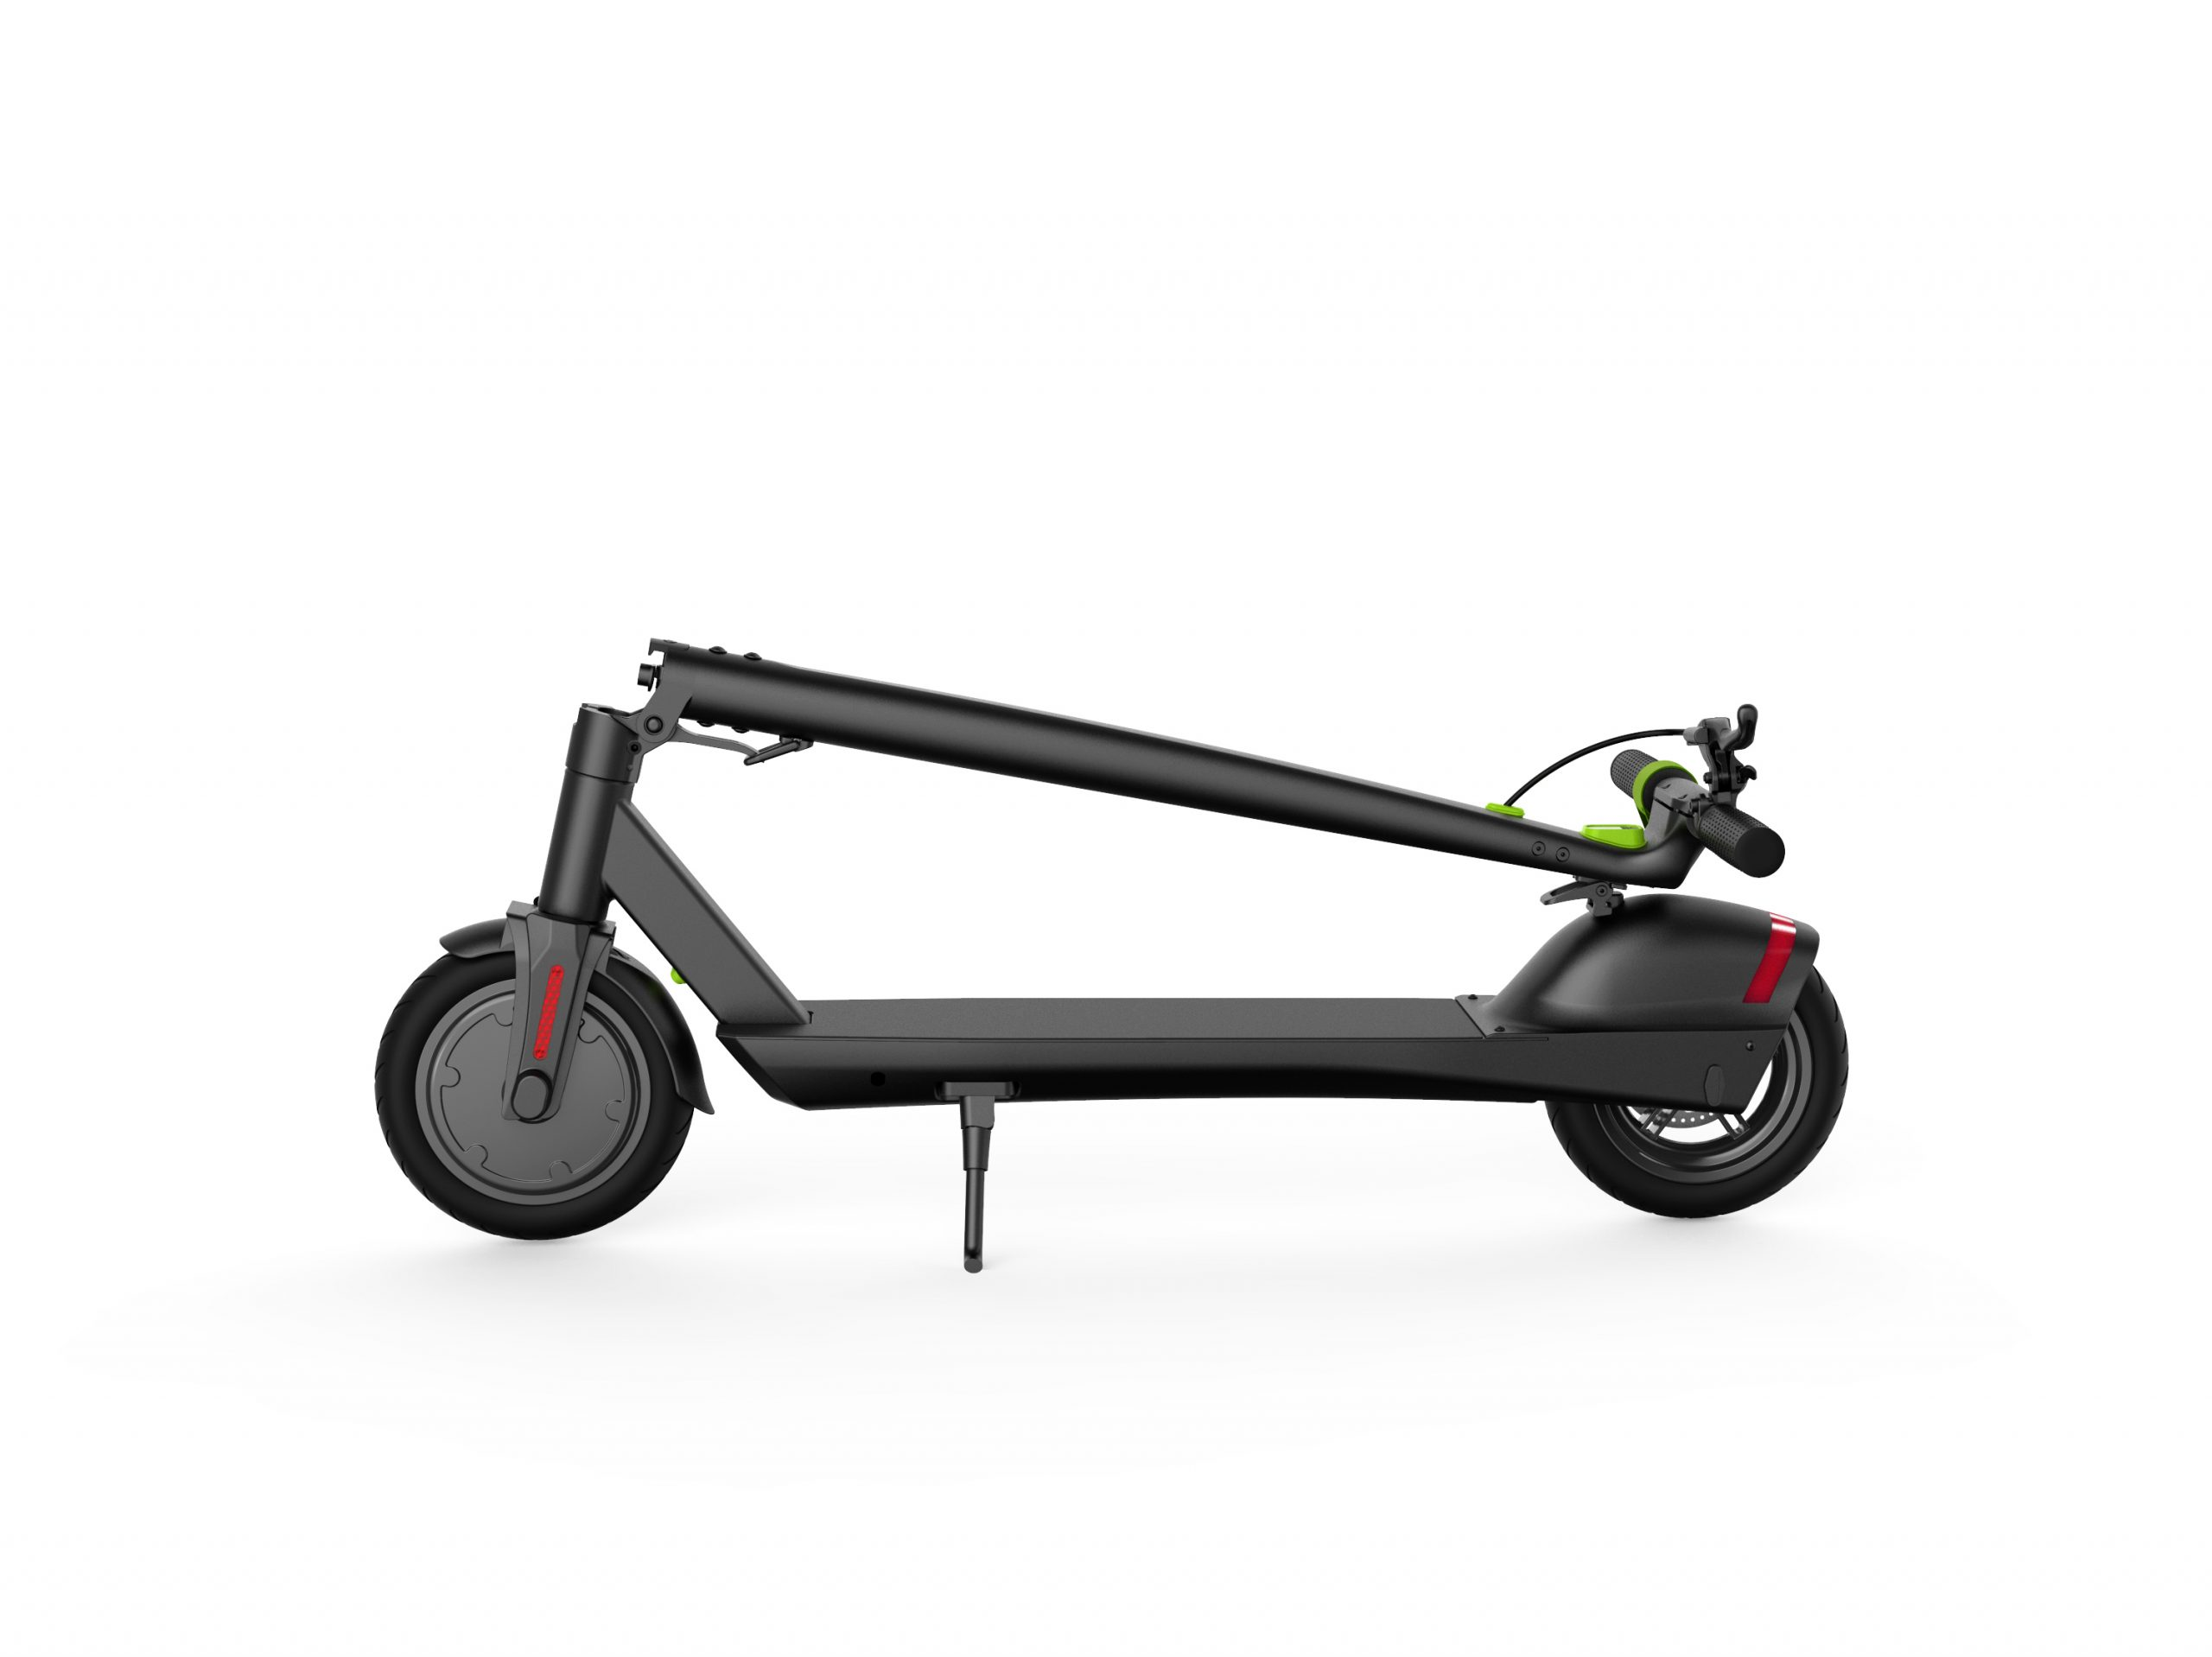 Li-Fe M004332 250 Air Pro Electric Scooter